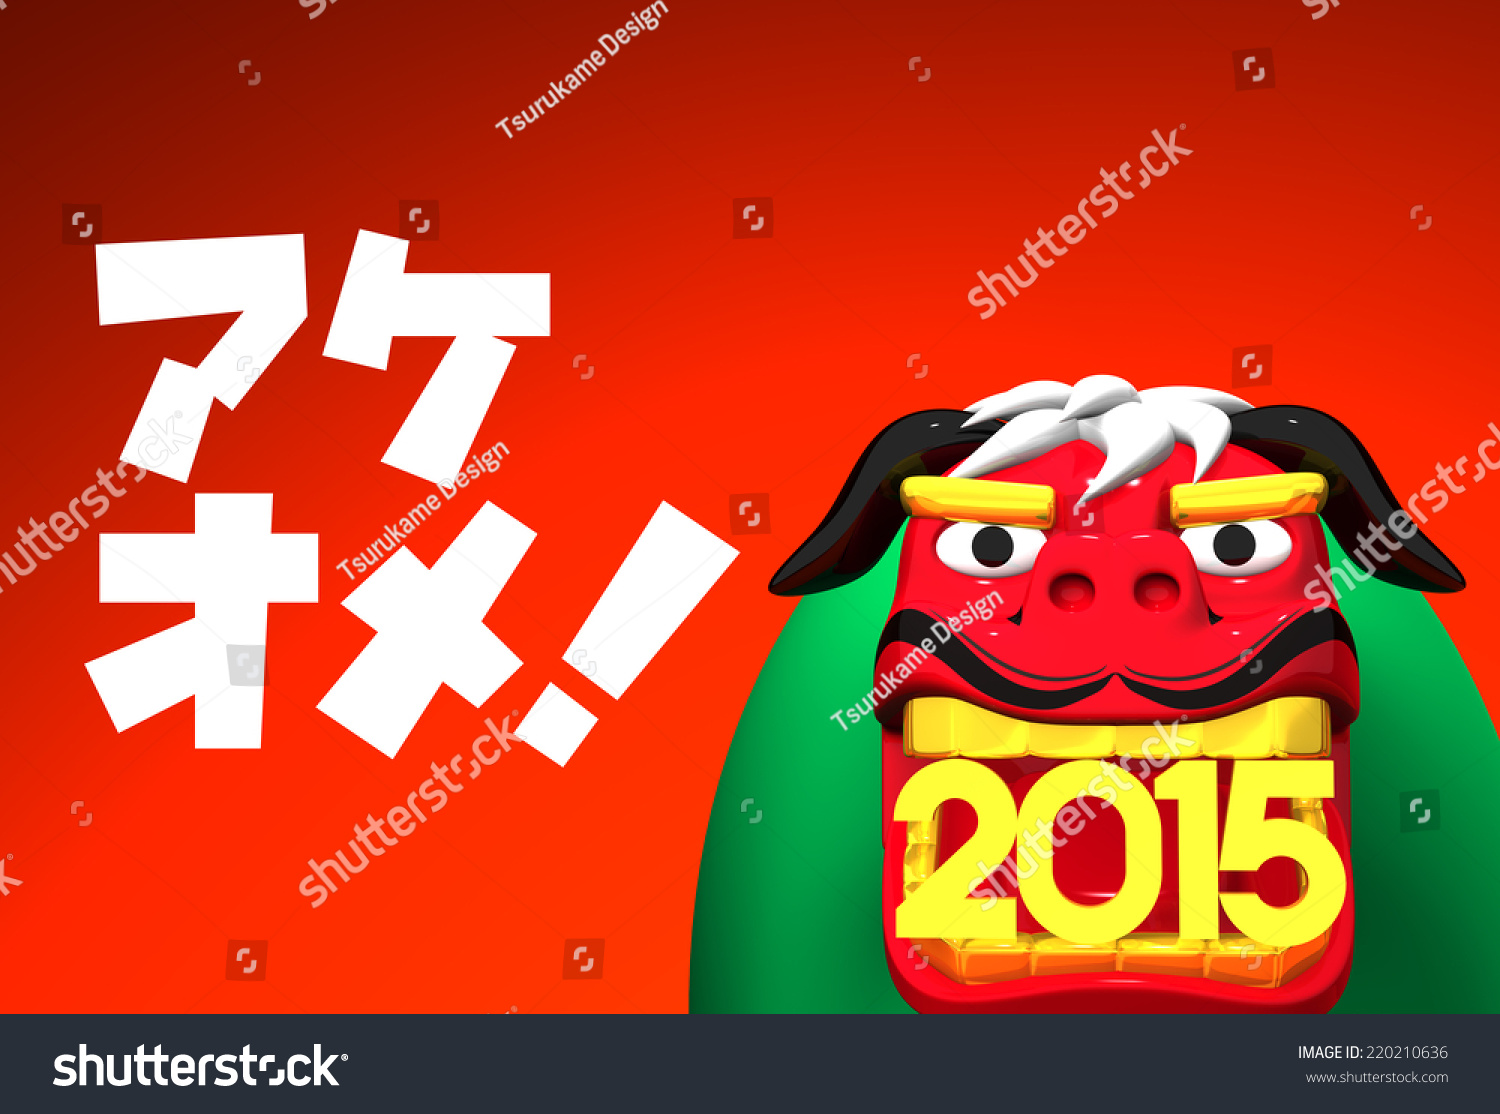 2015 Lion Dance Katakana Greeting On Red 3D render illustration For The Year Of The Sheep 2015 In Japan For New Year Greeting Postcard